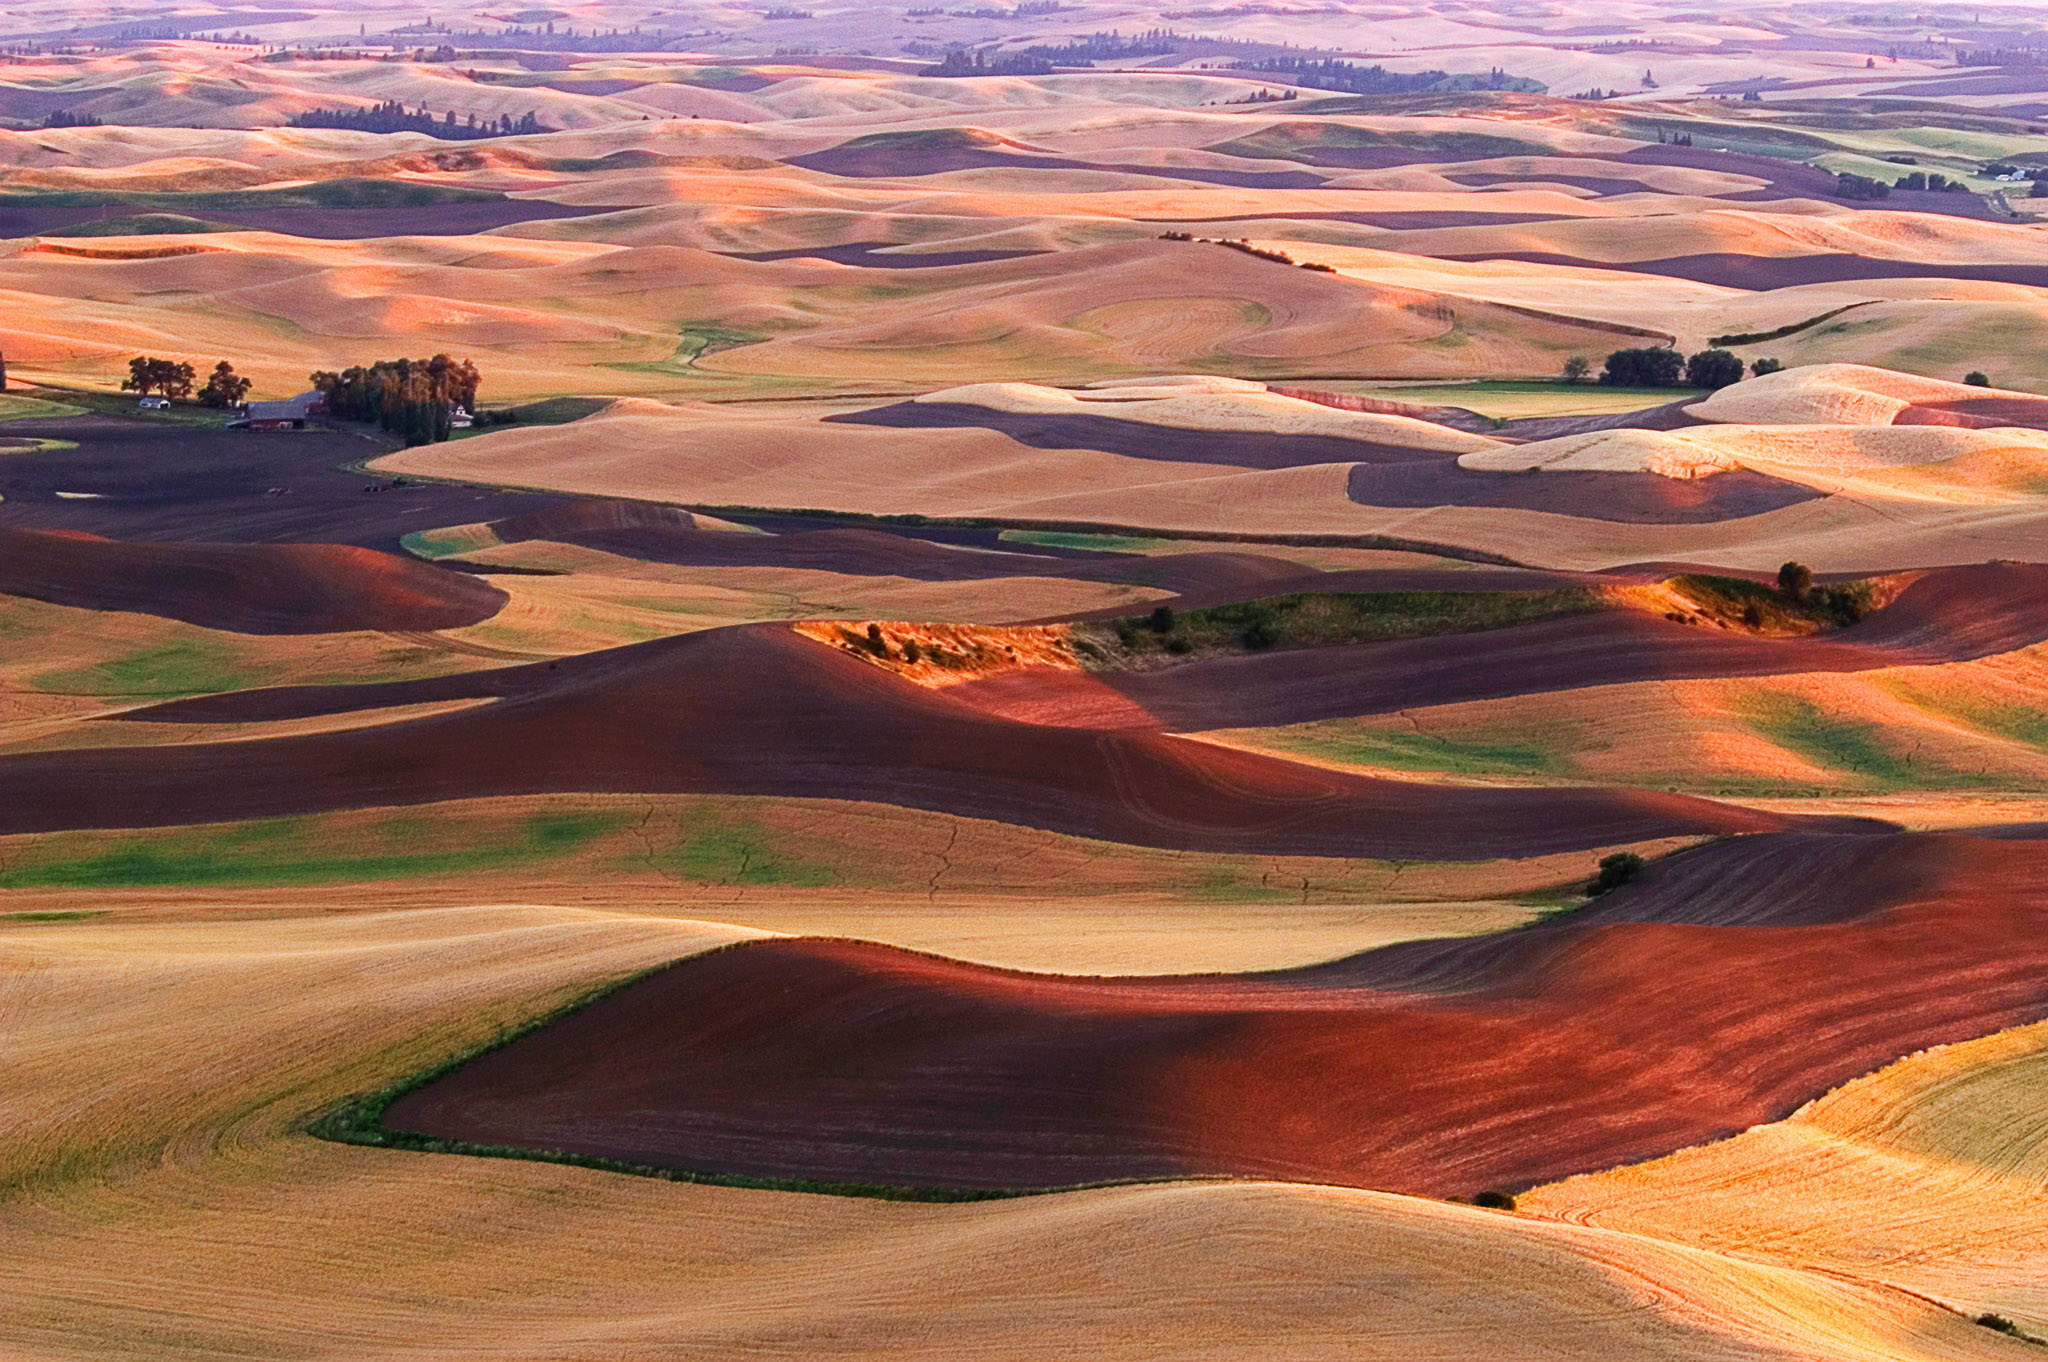 Chocolate and Caramel Mounds - Steptoe Butte, Washington Early July from the highest point in the Palouse region of eastern Washington. The wheat fields below are ripening as they await the harvest. The contours of the farmland in this area provide some amazing views from early spring until the late fall.